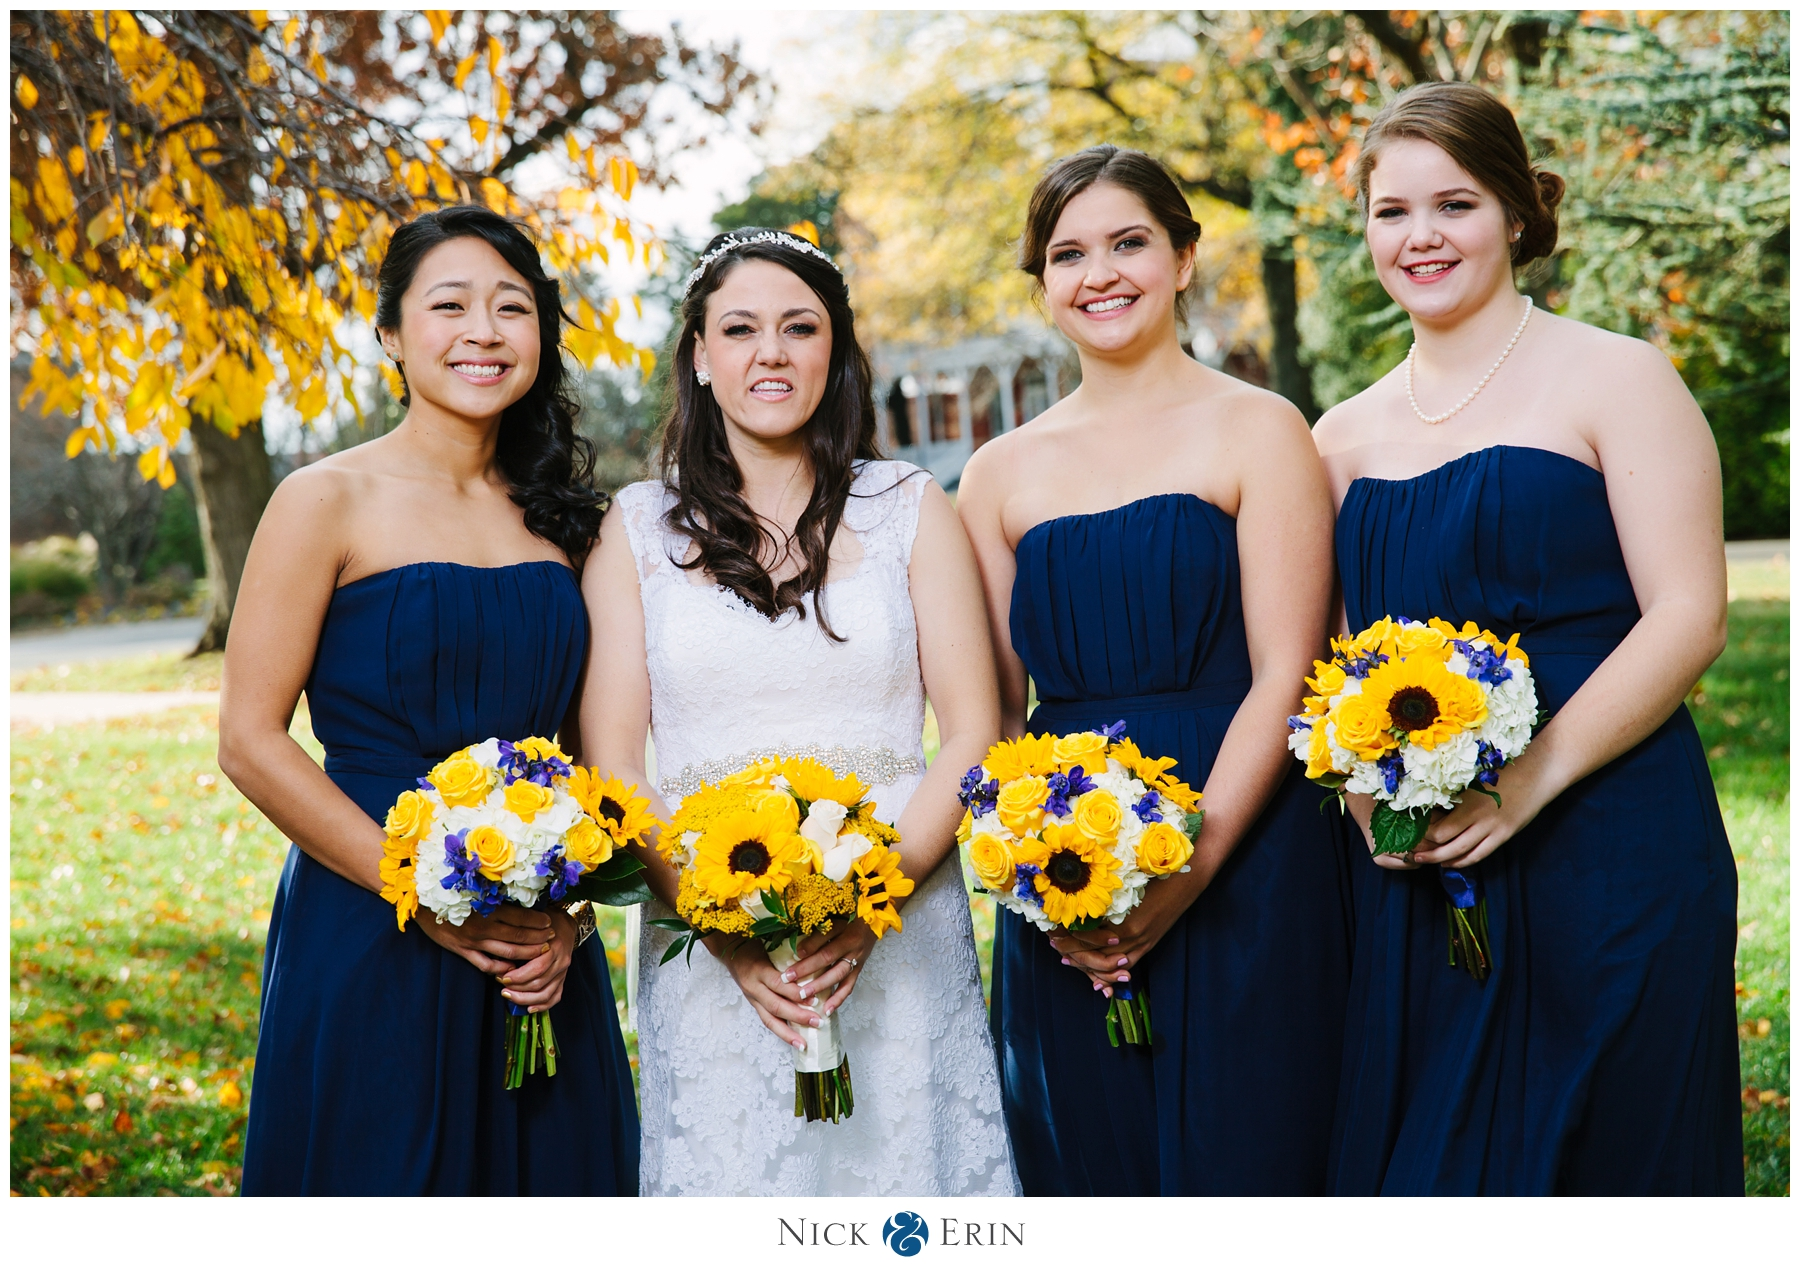 Donner_Photography_Fort Myer Wedding_Katie & Will_0030